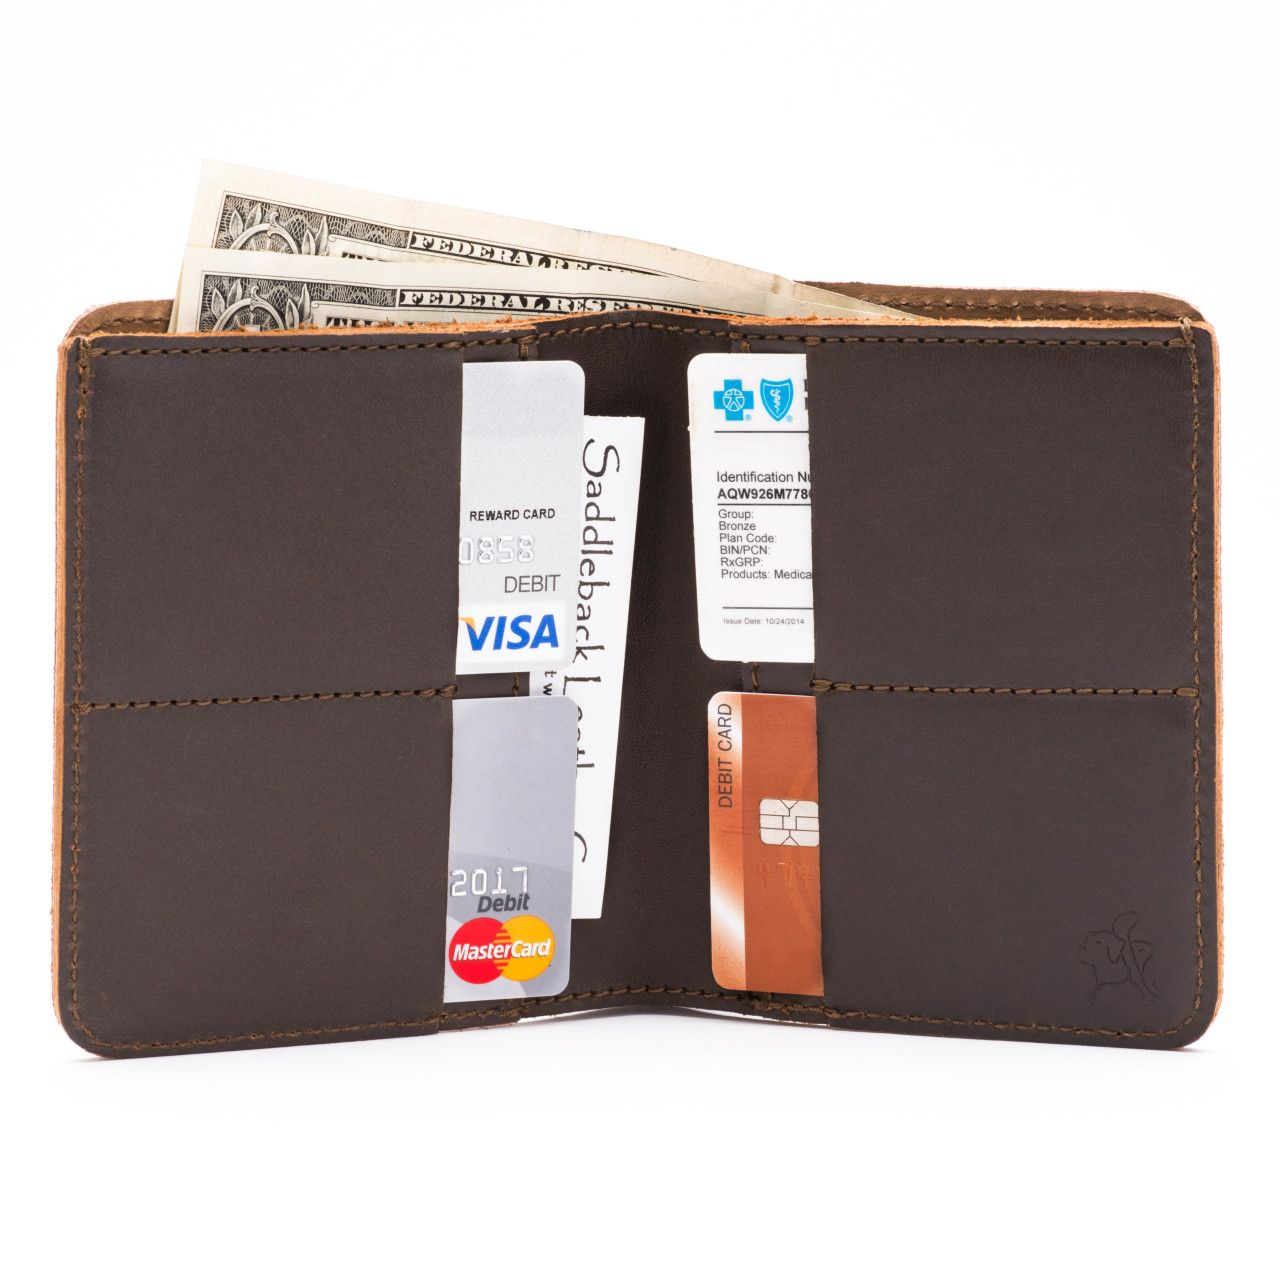 large leather bifold wallet large in dark coffee brown leather with money, credit cards, business cards